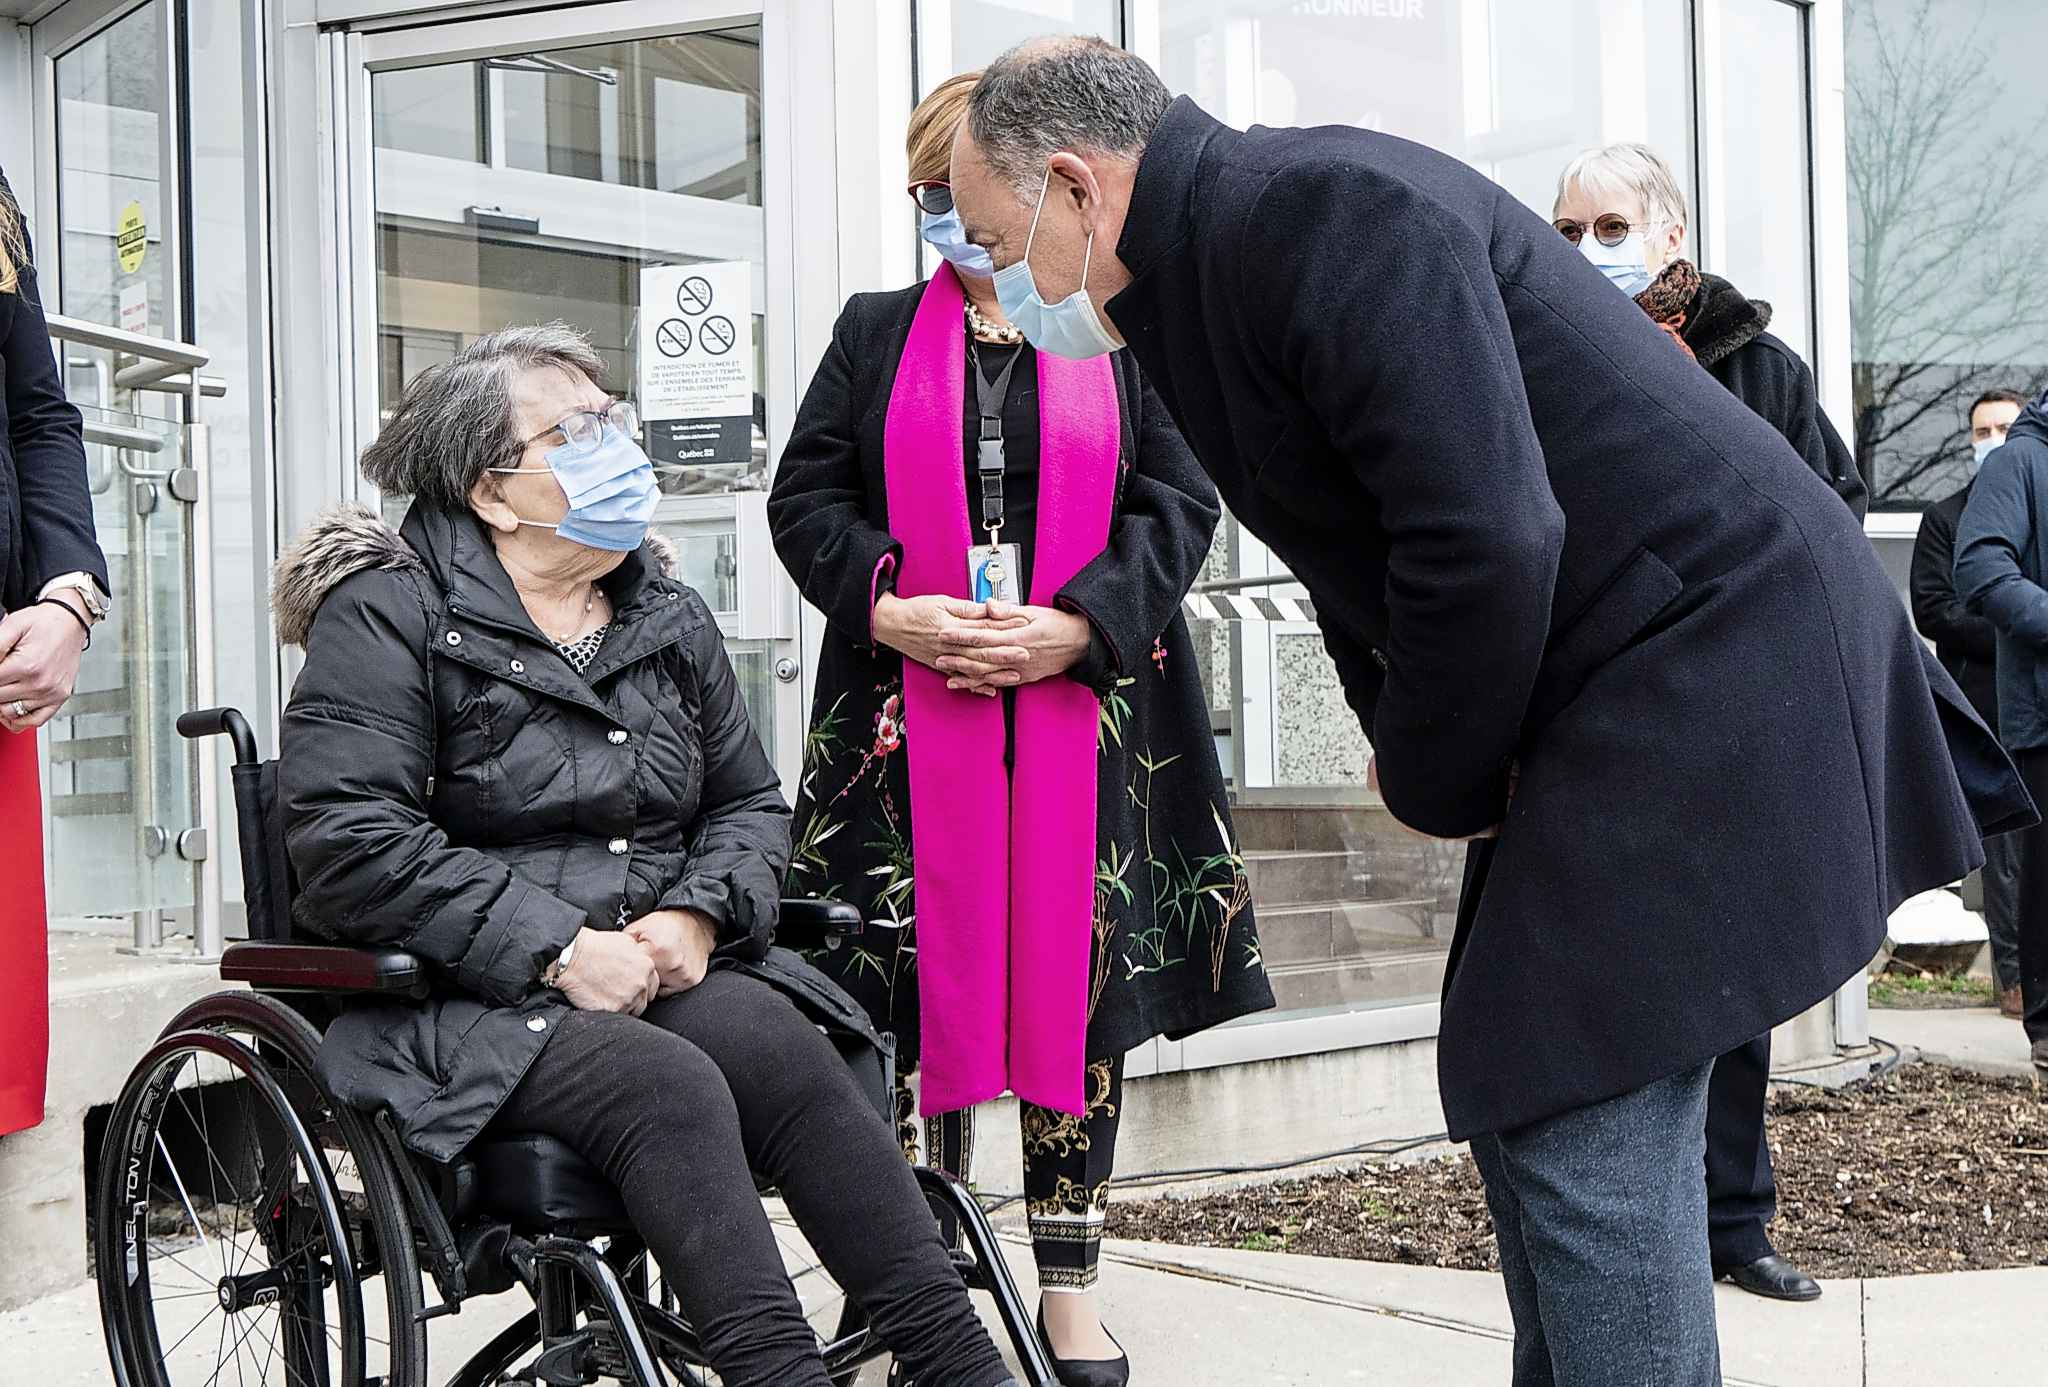 Quebec Health Minister Christian Dube greets Maimonides CHSLD resident Gloria Lallouz after she received a first dose of COVID-19 vaccine in Montreal, on Monday, December 14, 2020. THE CANADIAN PRESS/Paul Chiasson